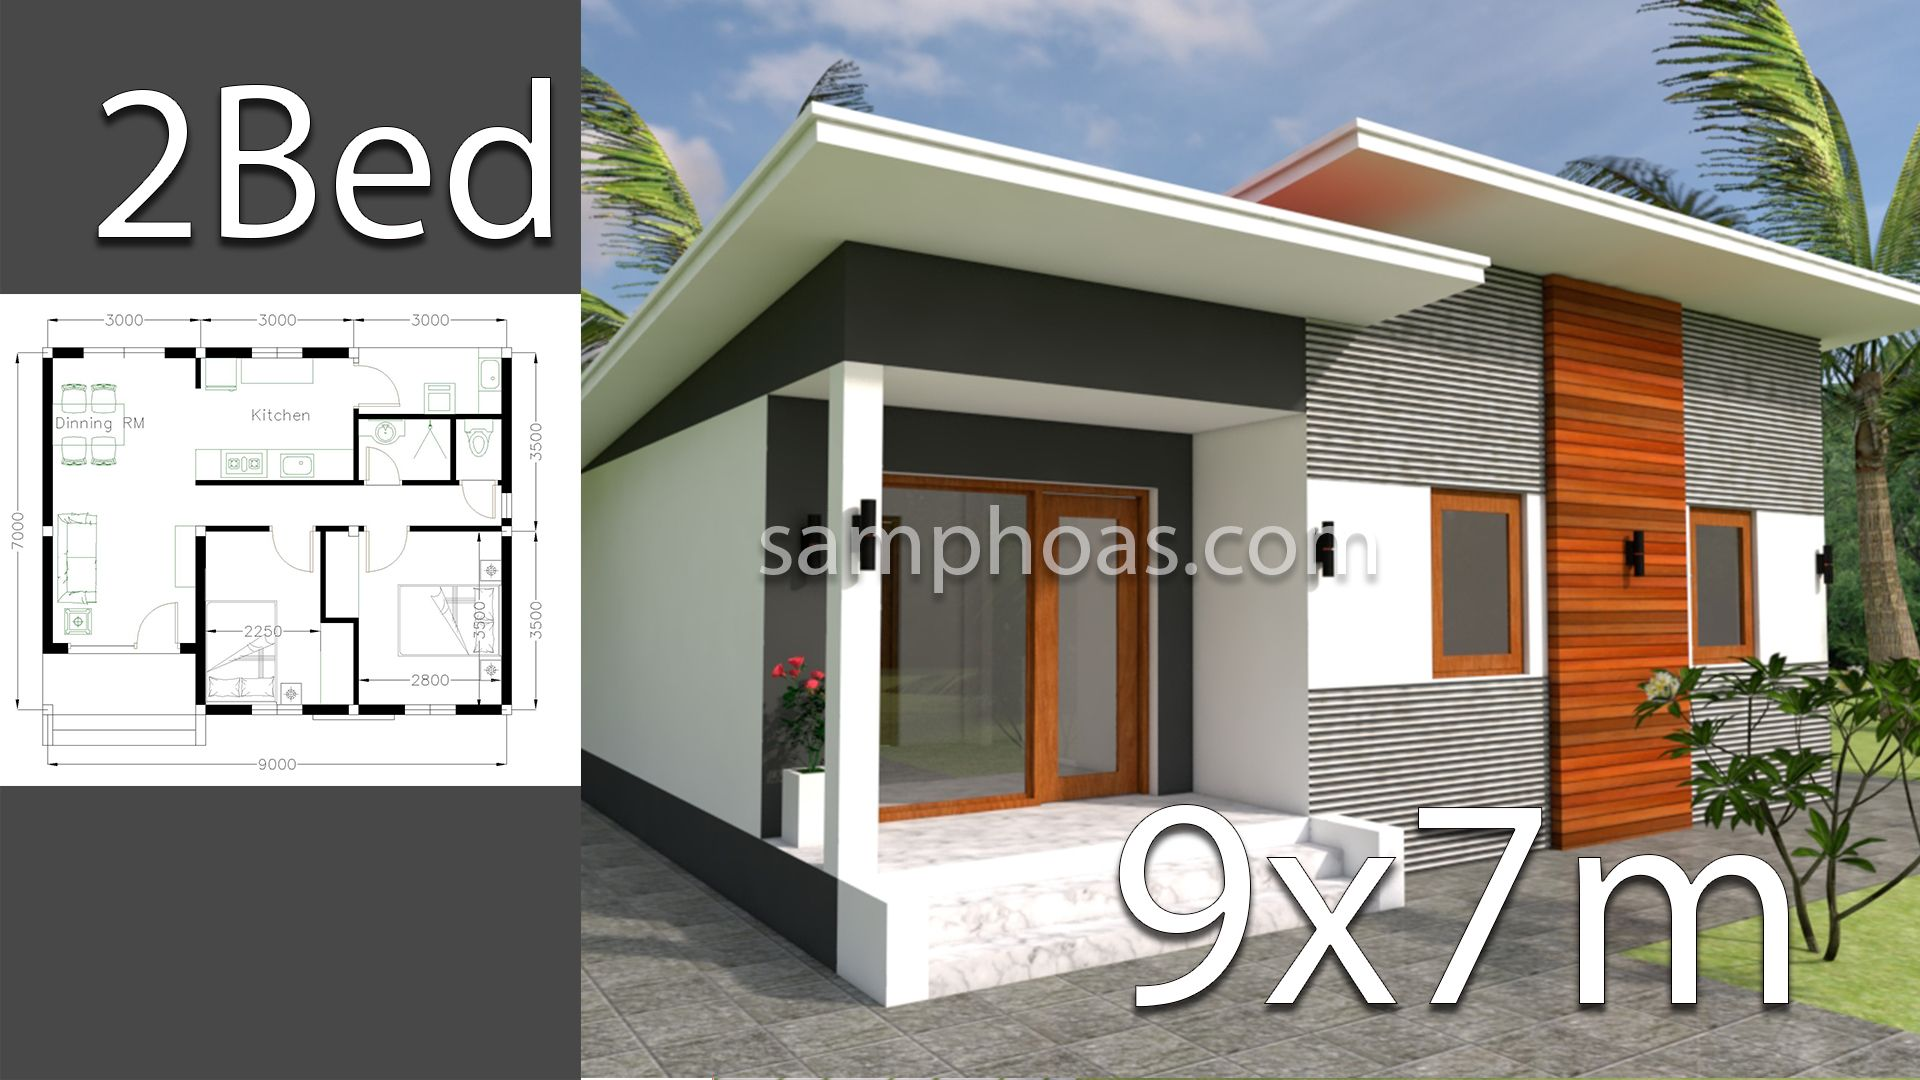 Plan 3d Home Design 9x7m 2 Bedrooms | Bedroom house plans, Small ...